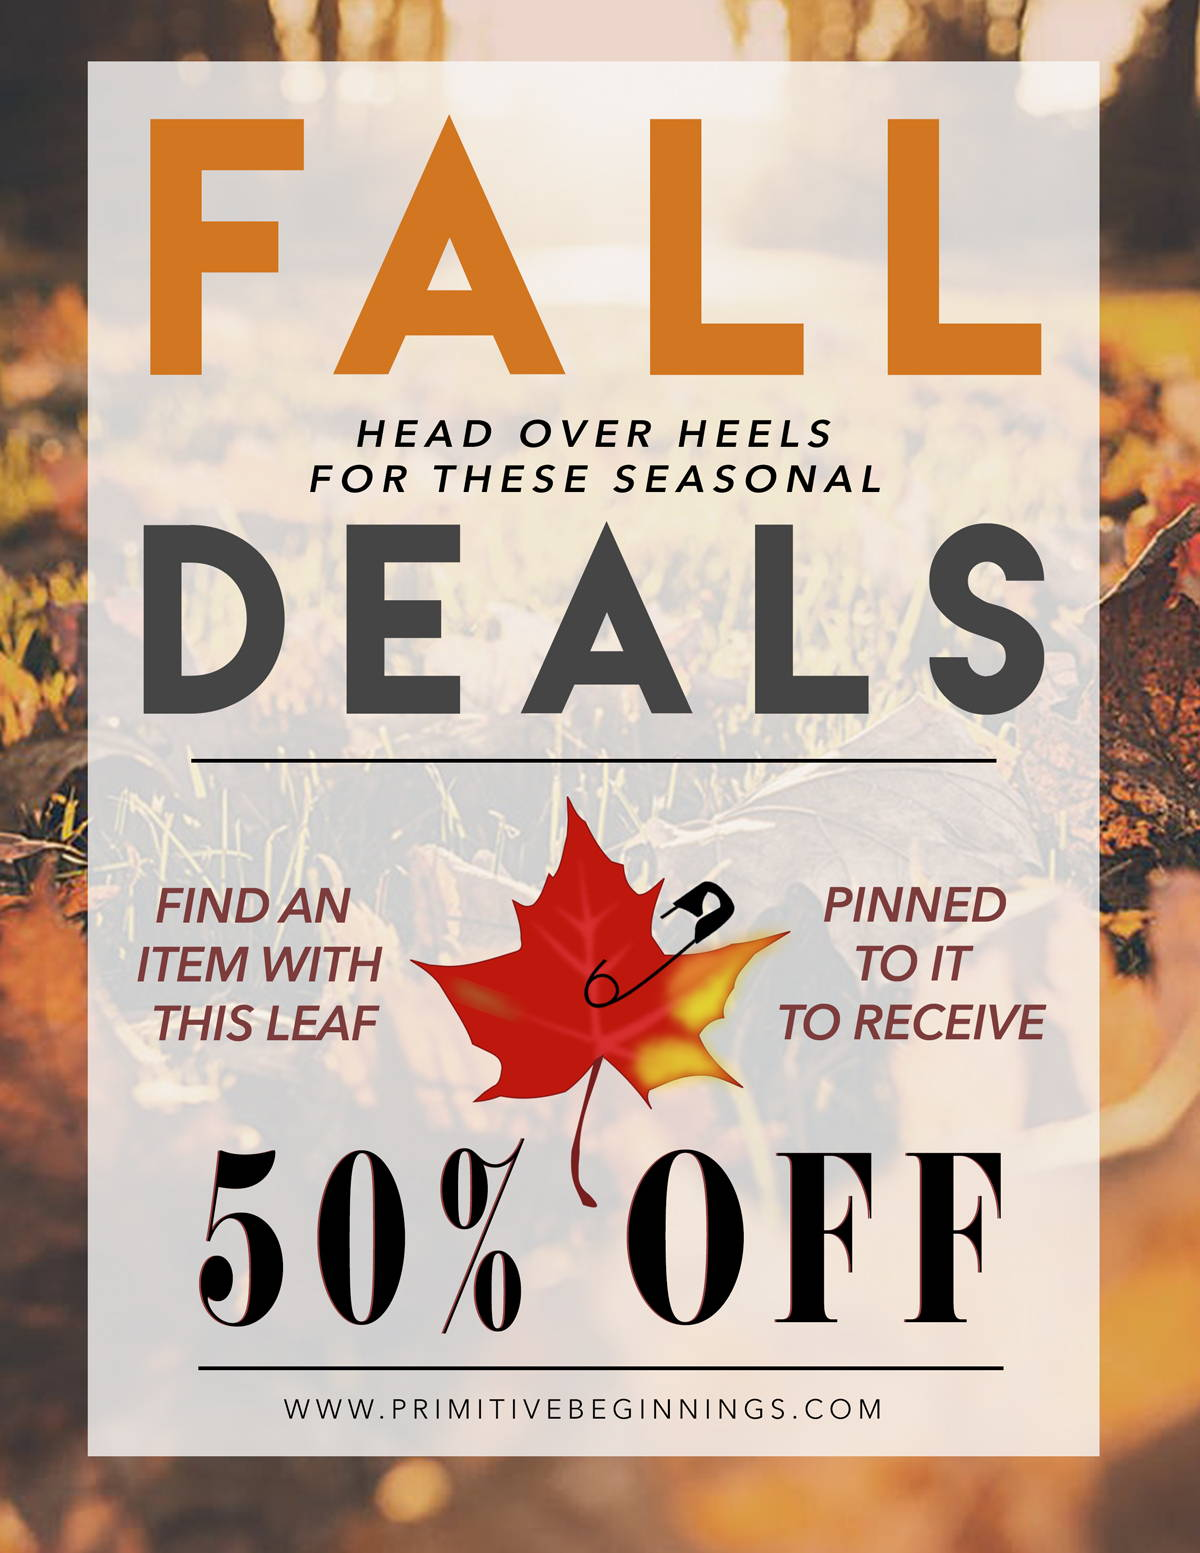 Primitive Beginnings Fall Flash Sale